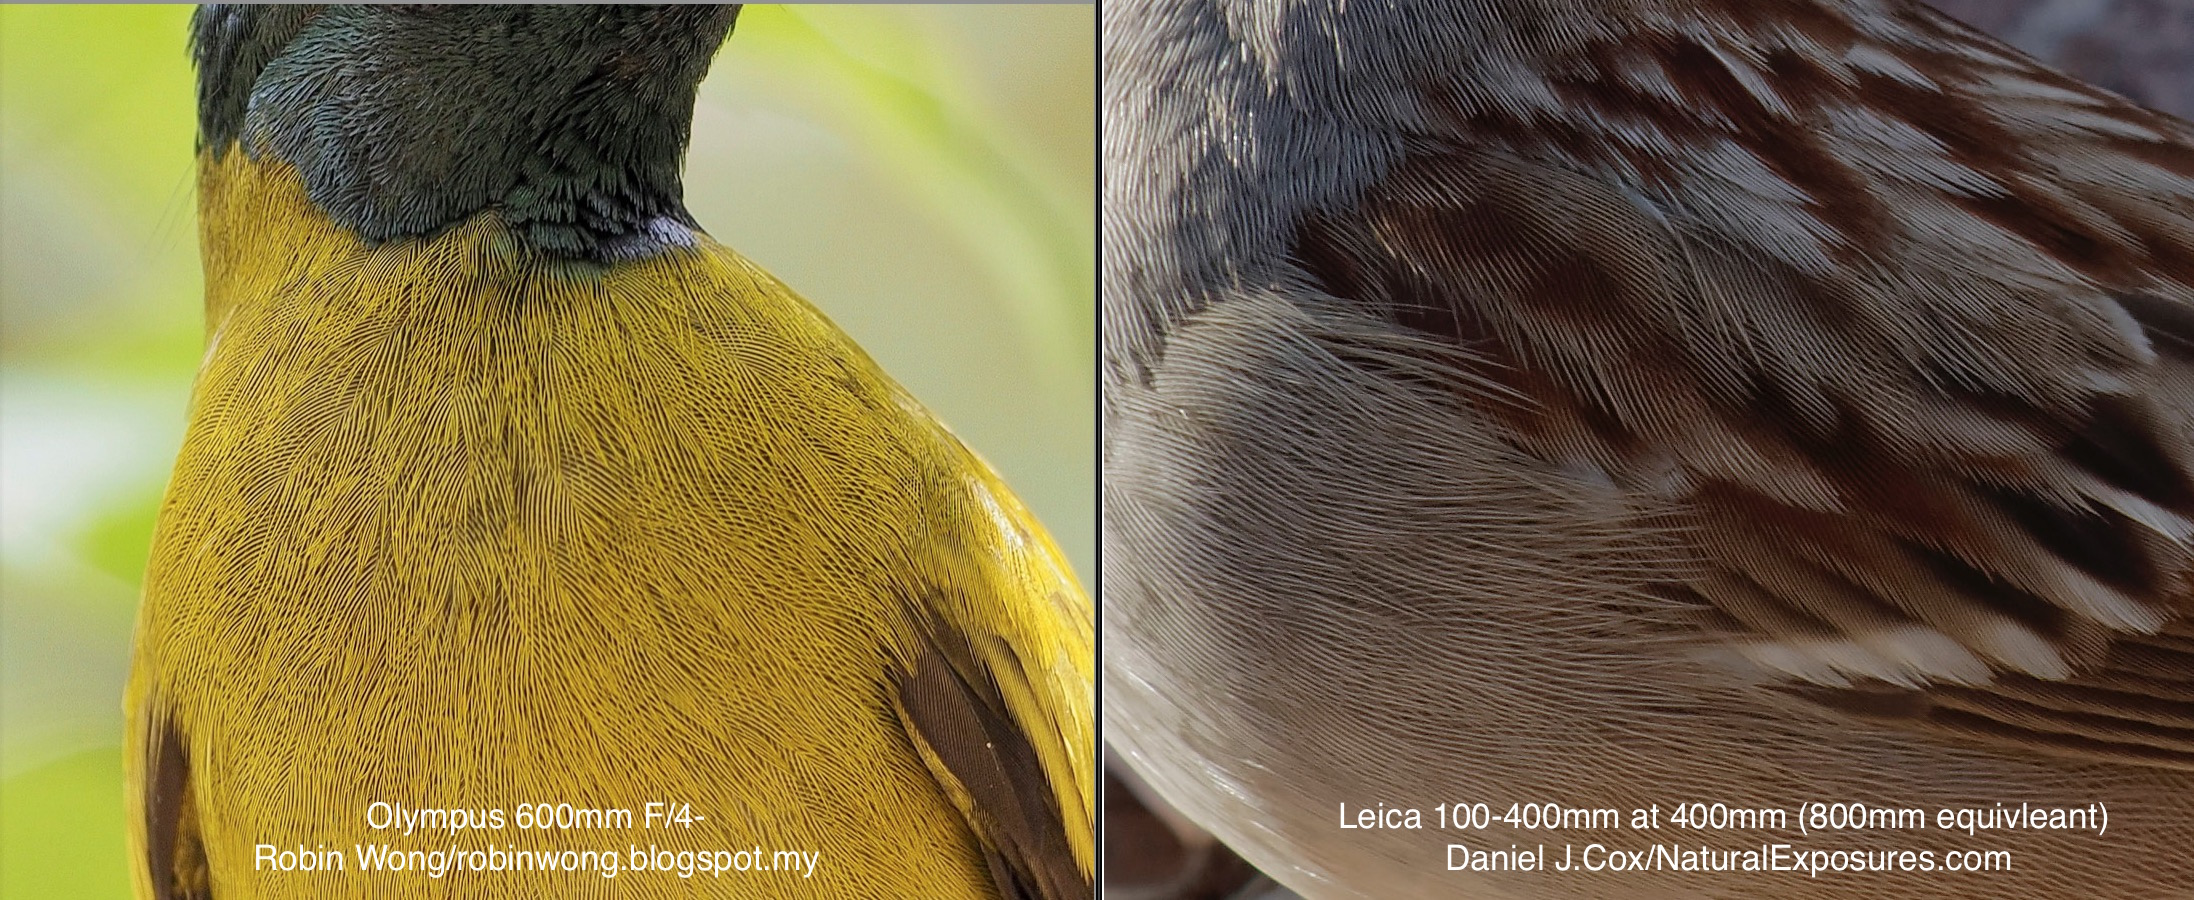 Very unscientific comparison of the new Olympus 600mm F/4 and the new Leica 100-400mm zoom.